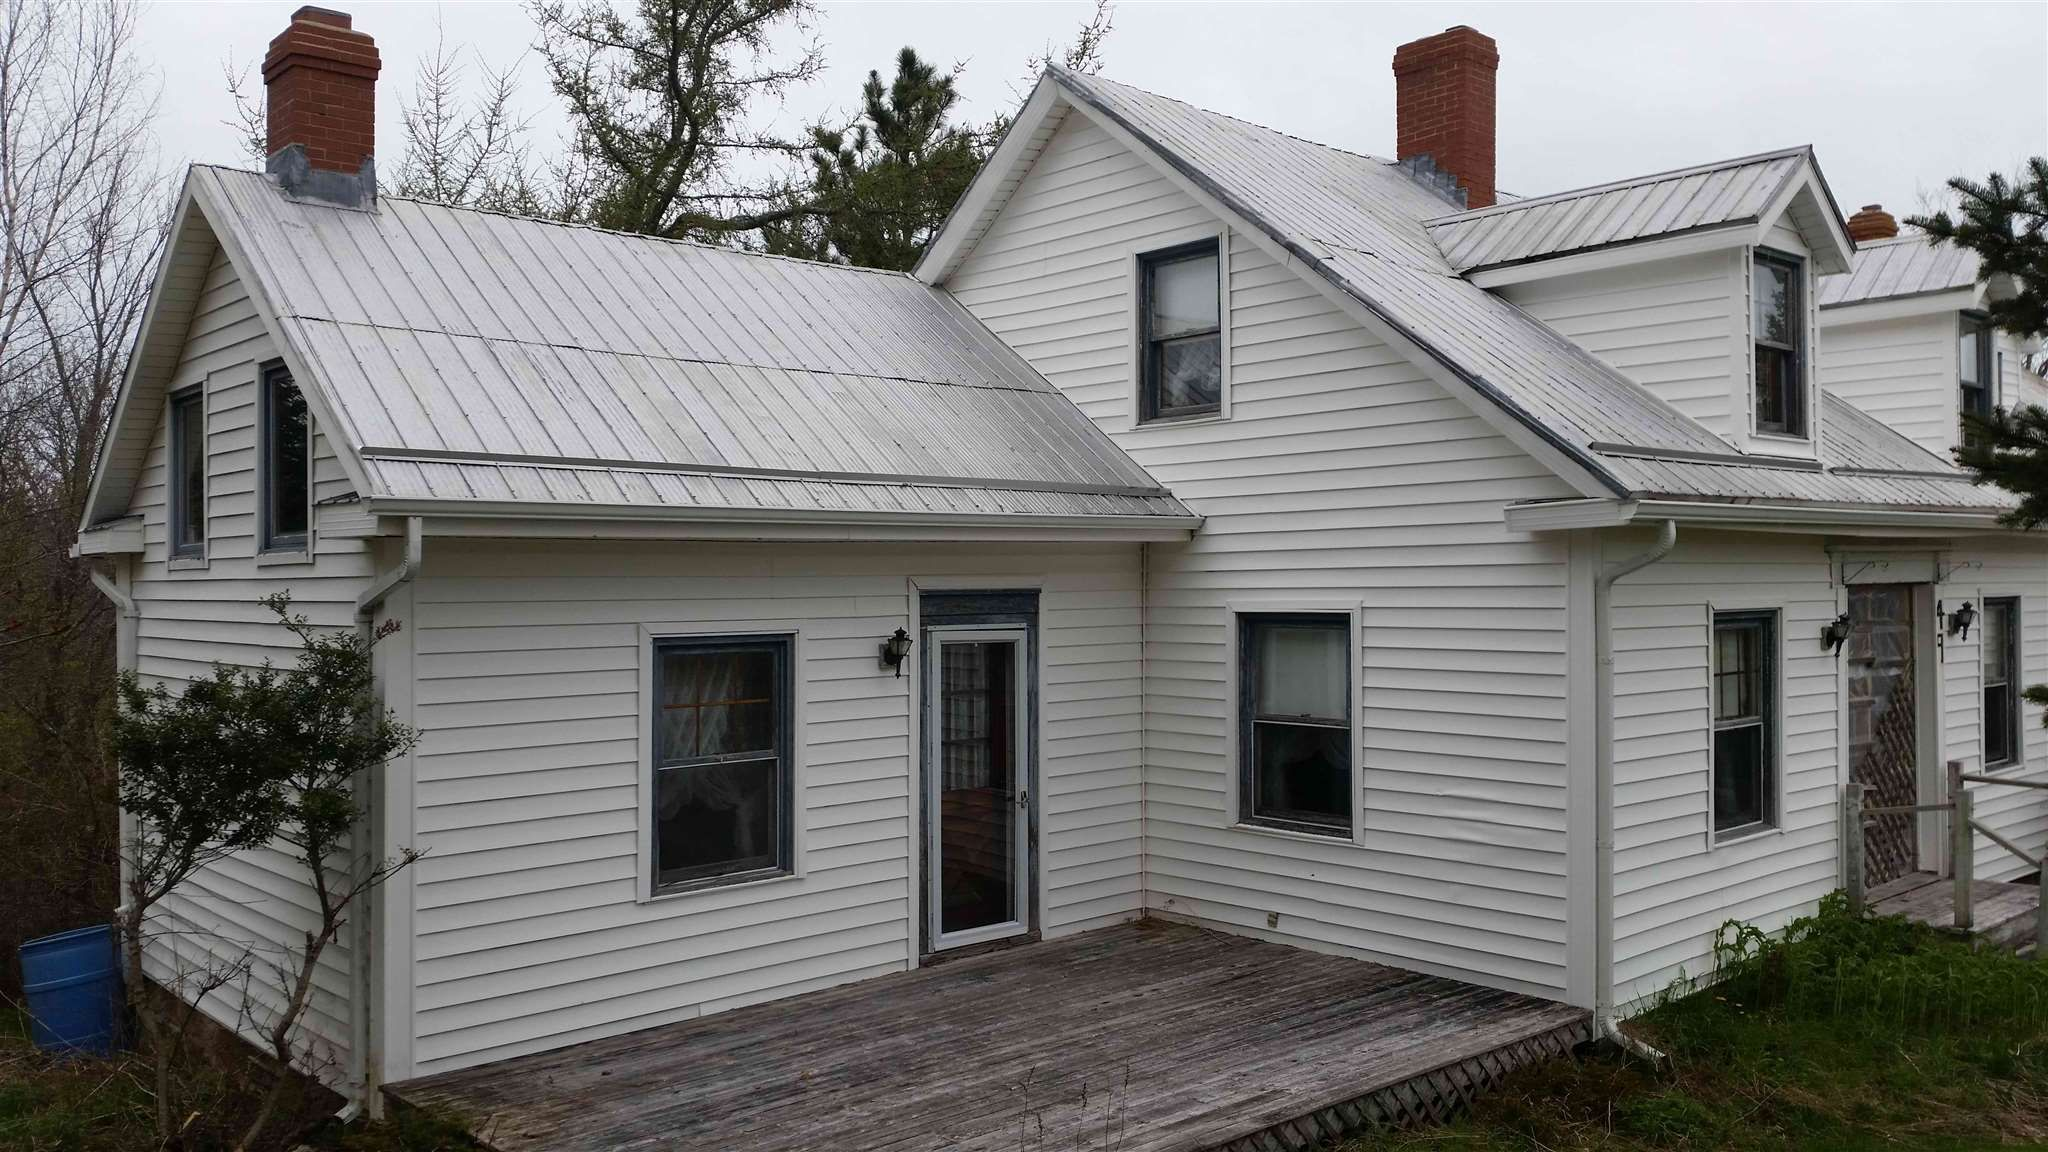 Main Photo: 49 Heathbell Road in Heathbell: 108-Rural Pictou County Residential for sale (Northern Region)  : MLS®# 202101390